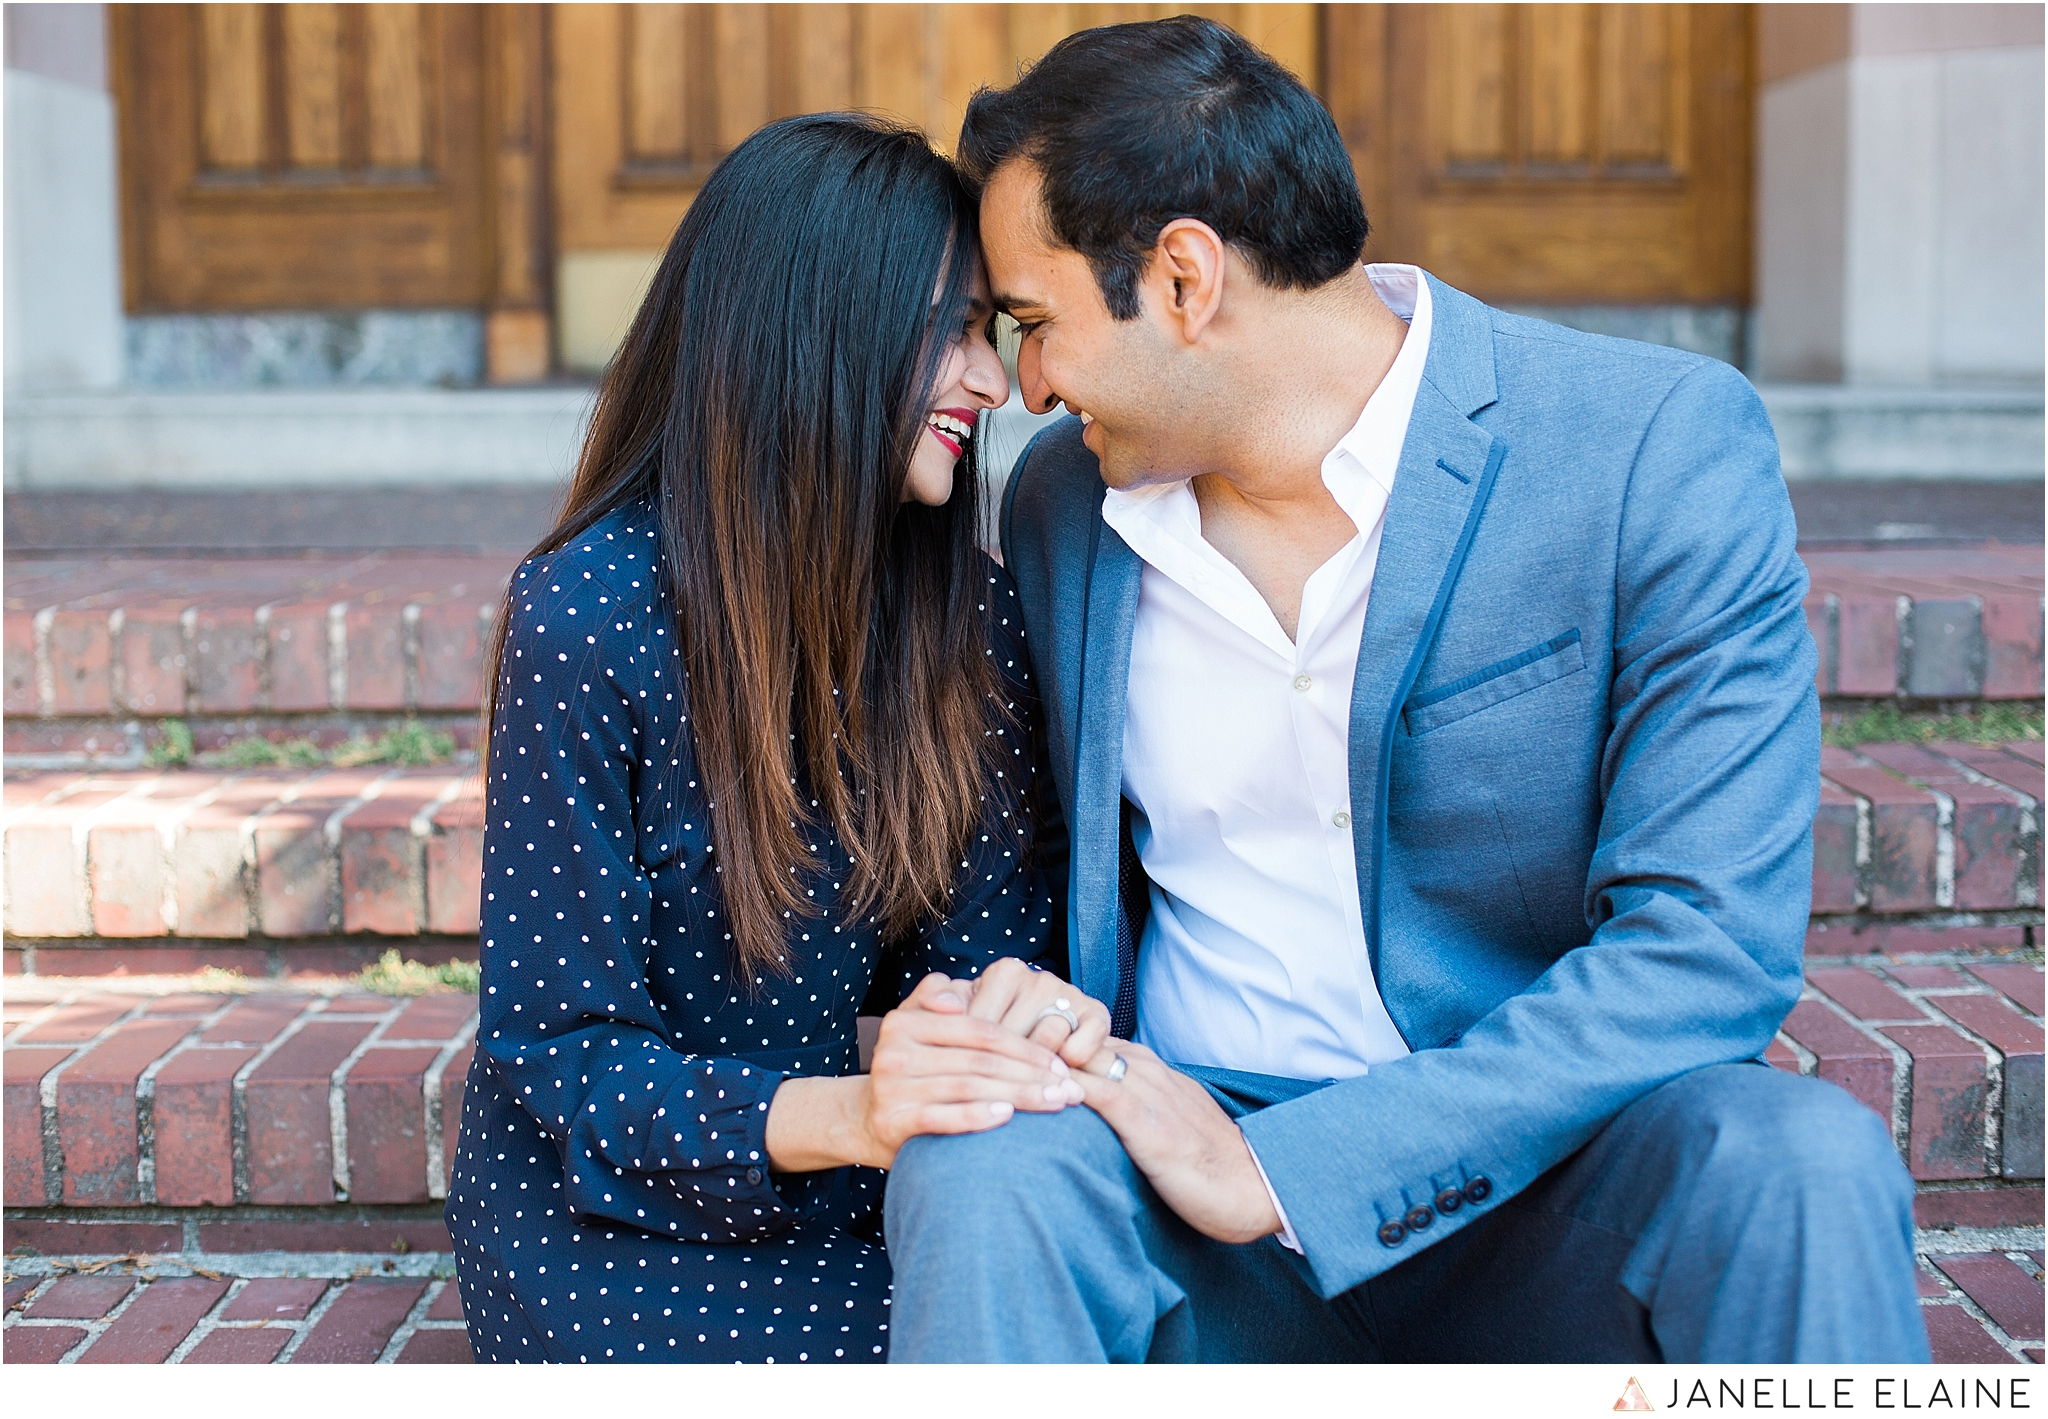 janelle elaine photography-zain and umema-seattle-uw-red square-engagement-photographer-24.jpg